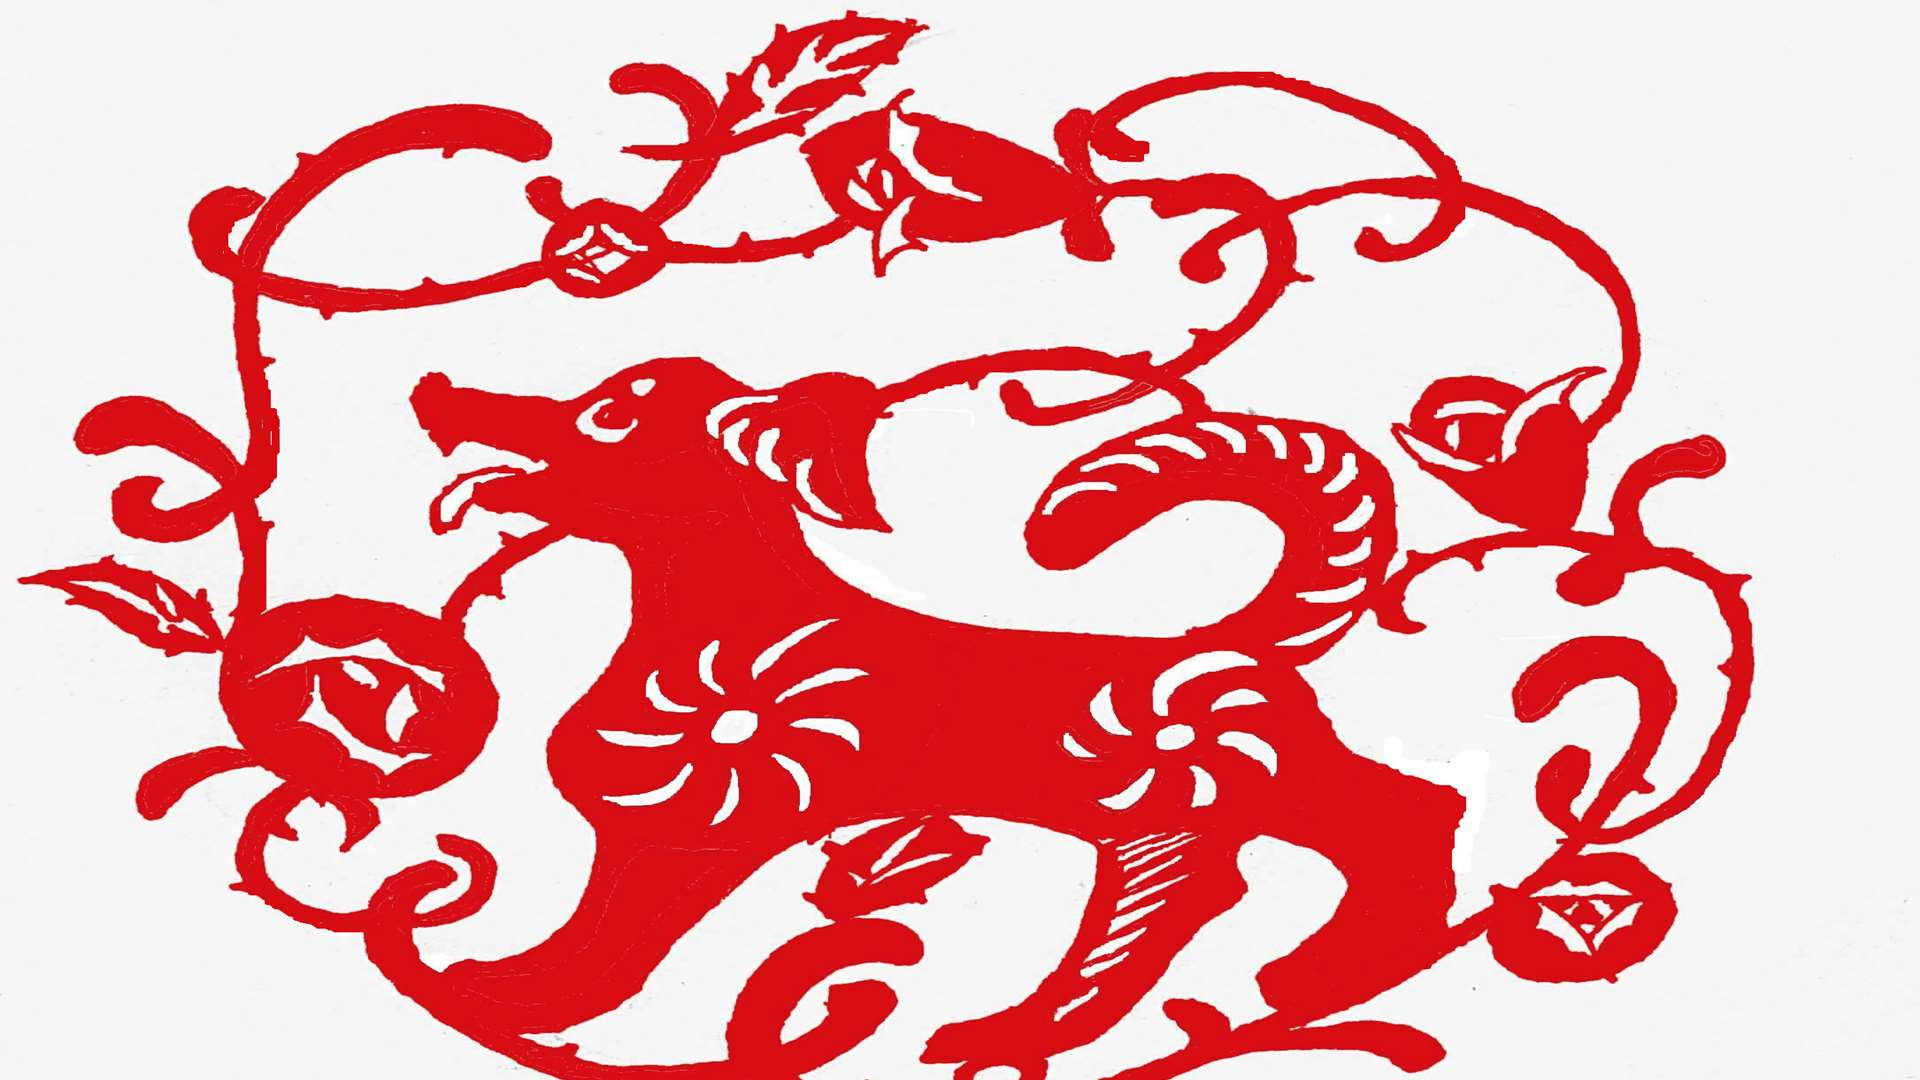 This year is the Year of the Dog in the Chinese zodiac